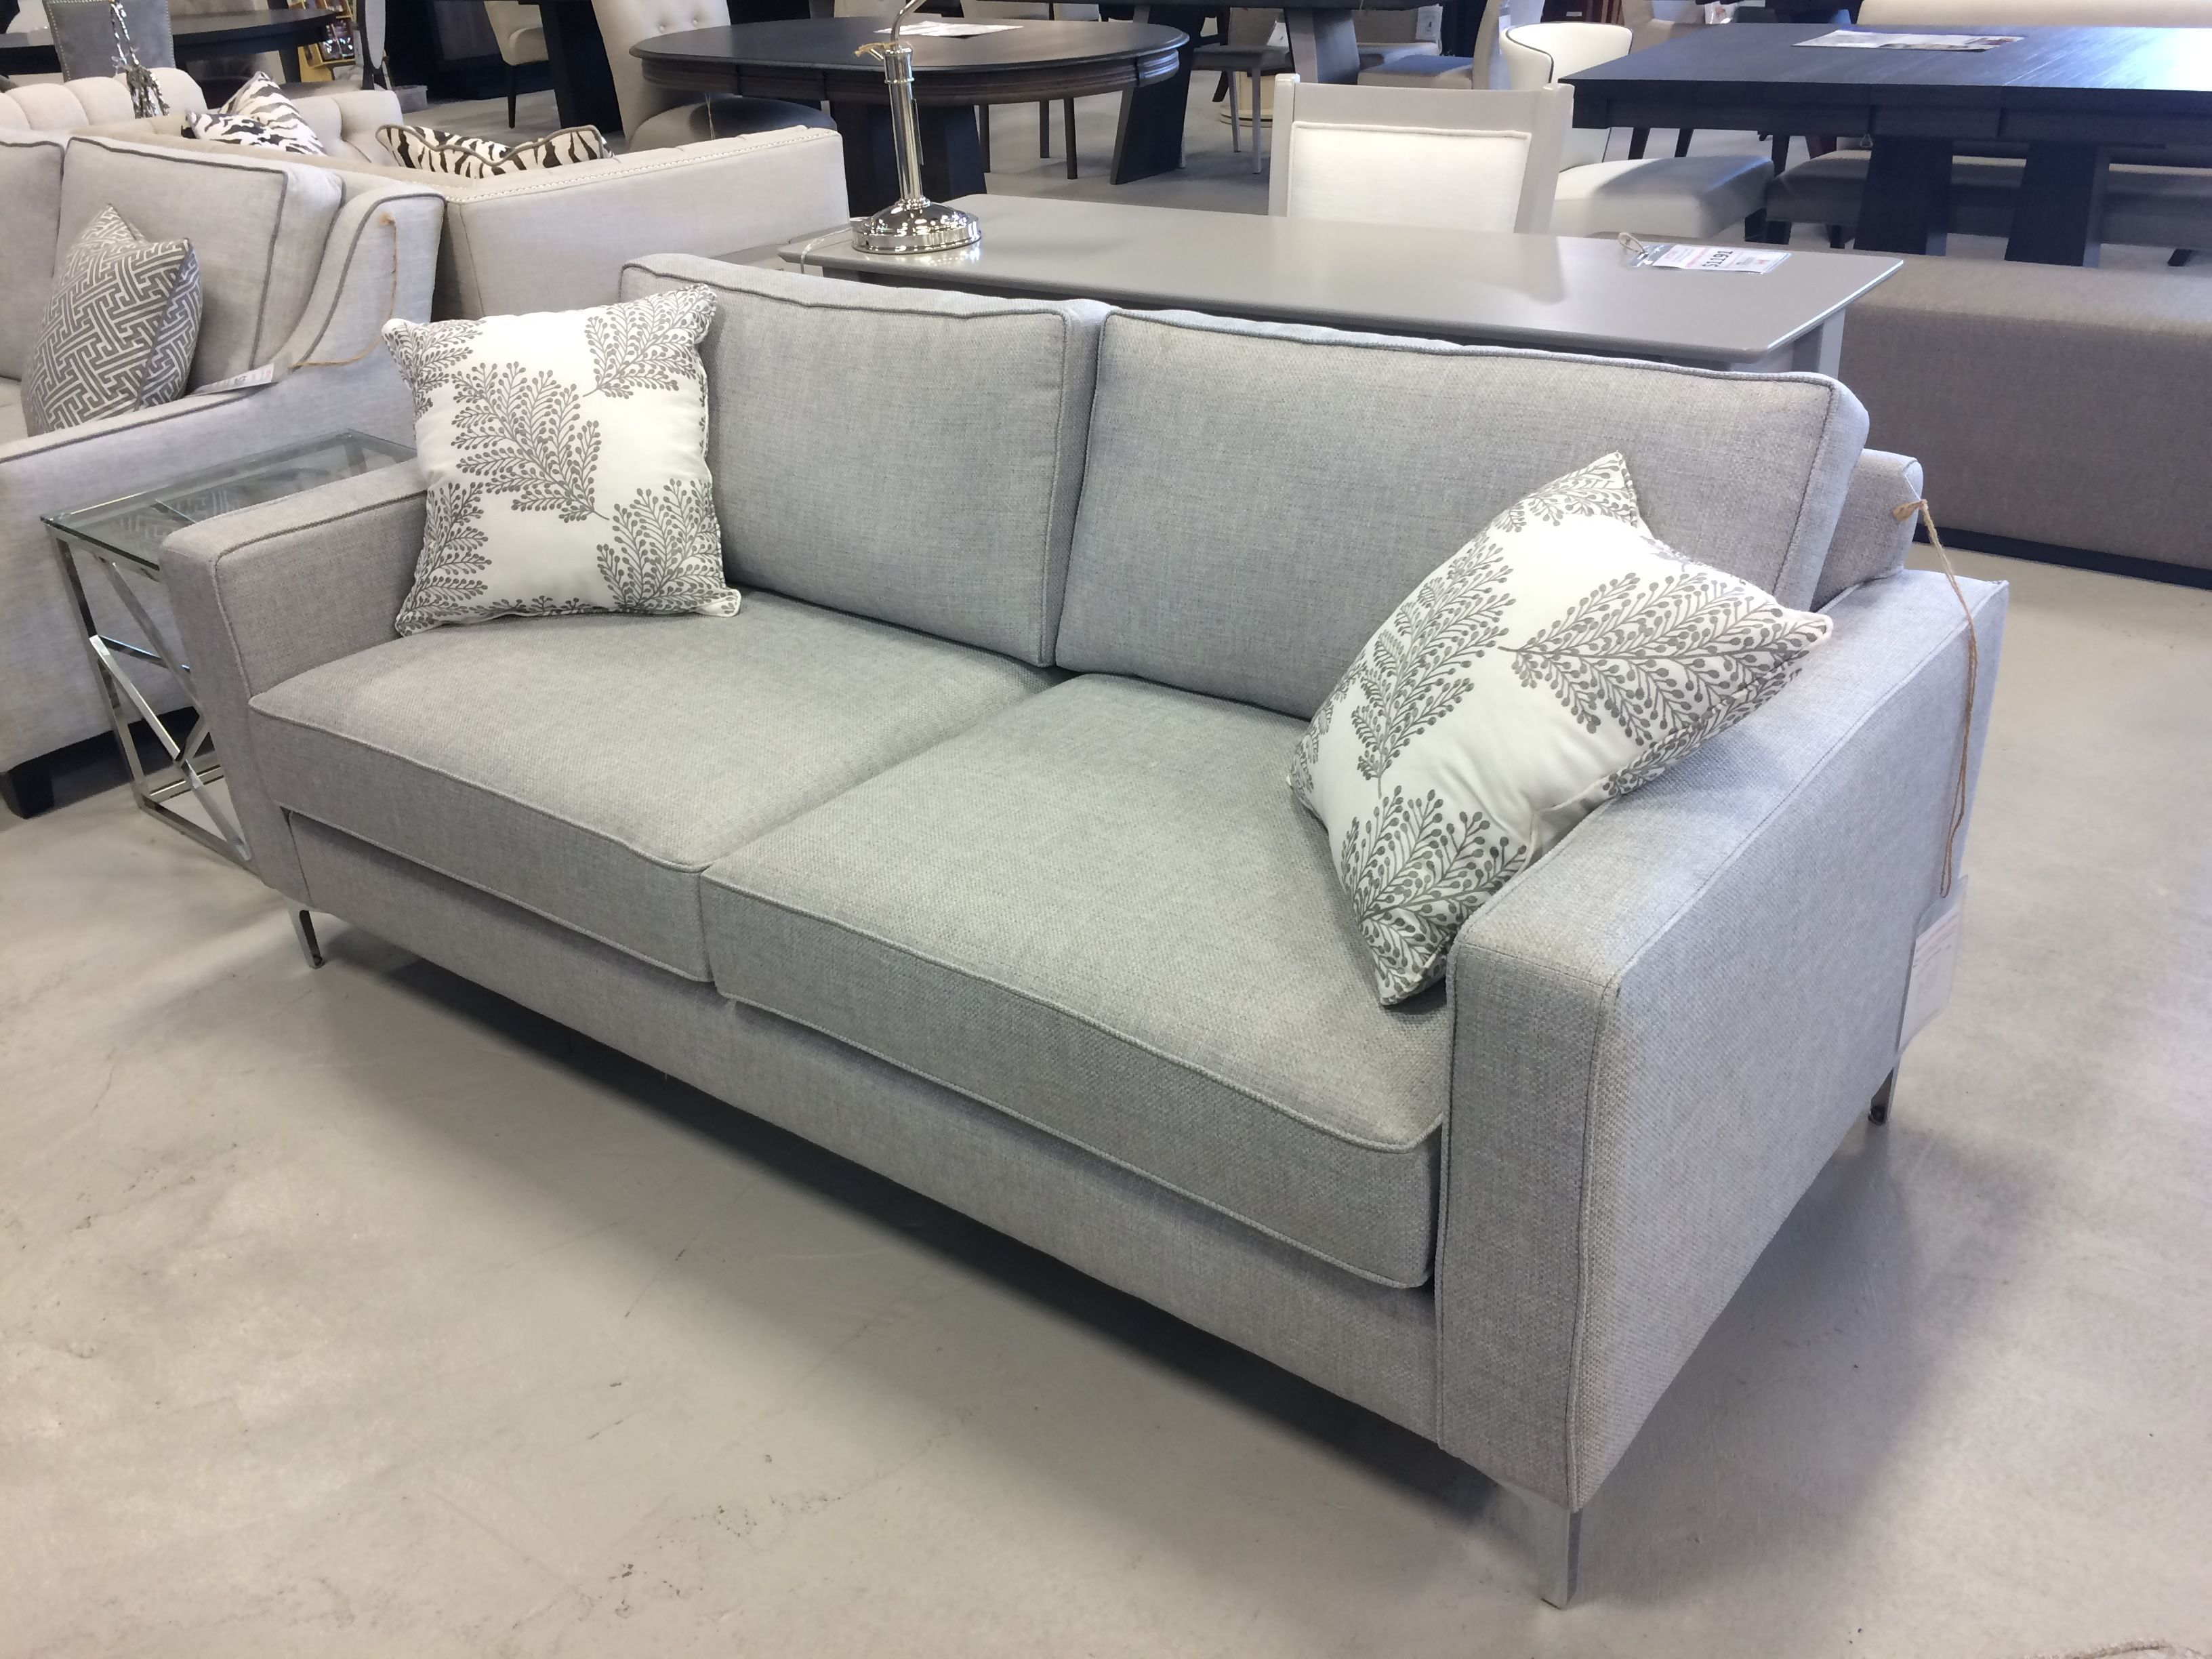 GREAT ROOM Sofa option 2 Van Gogh Apollo custom sectional